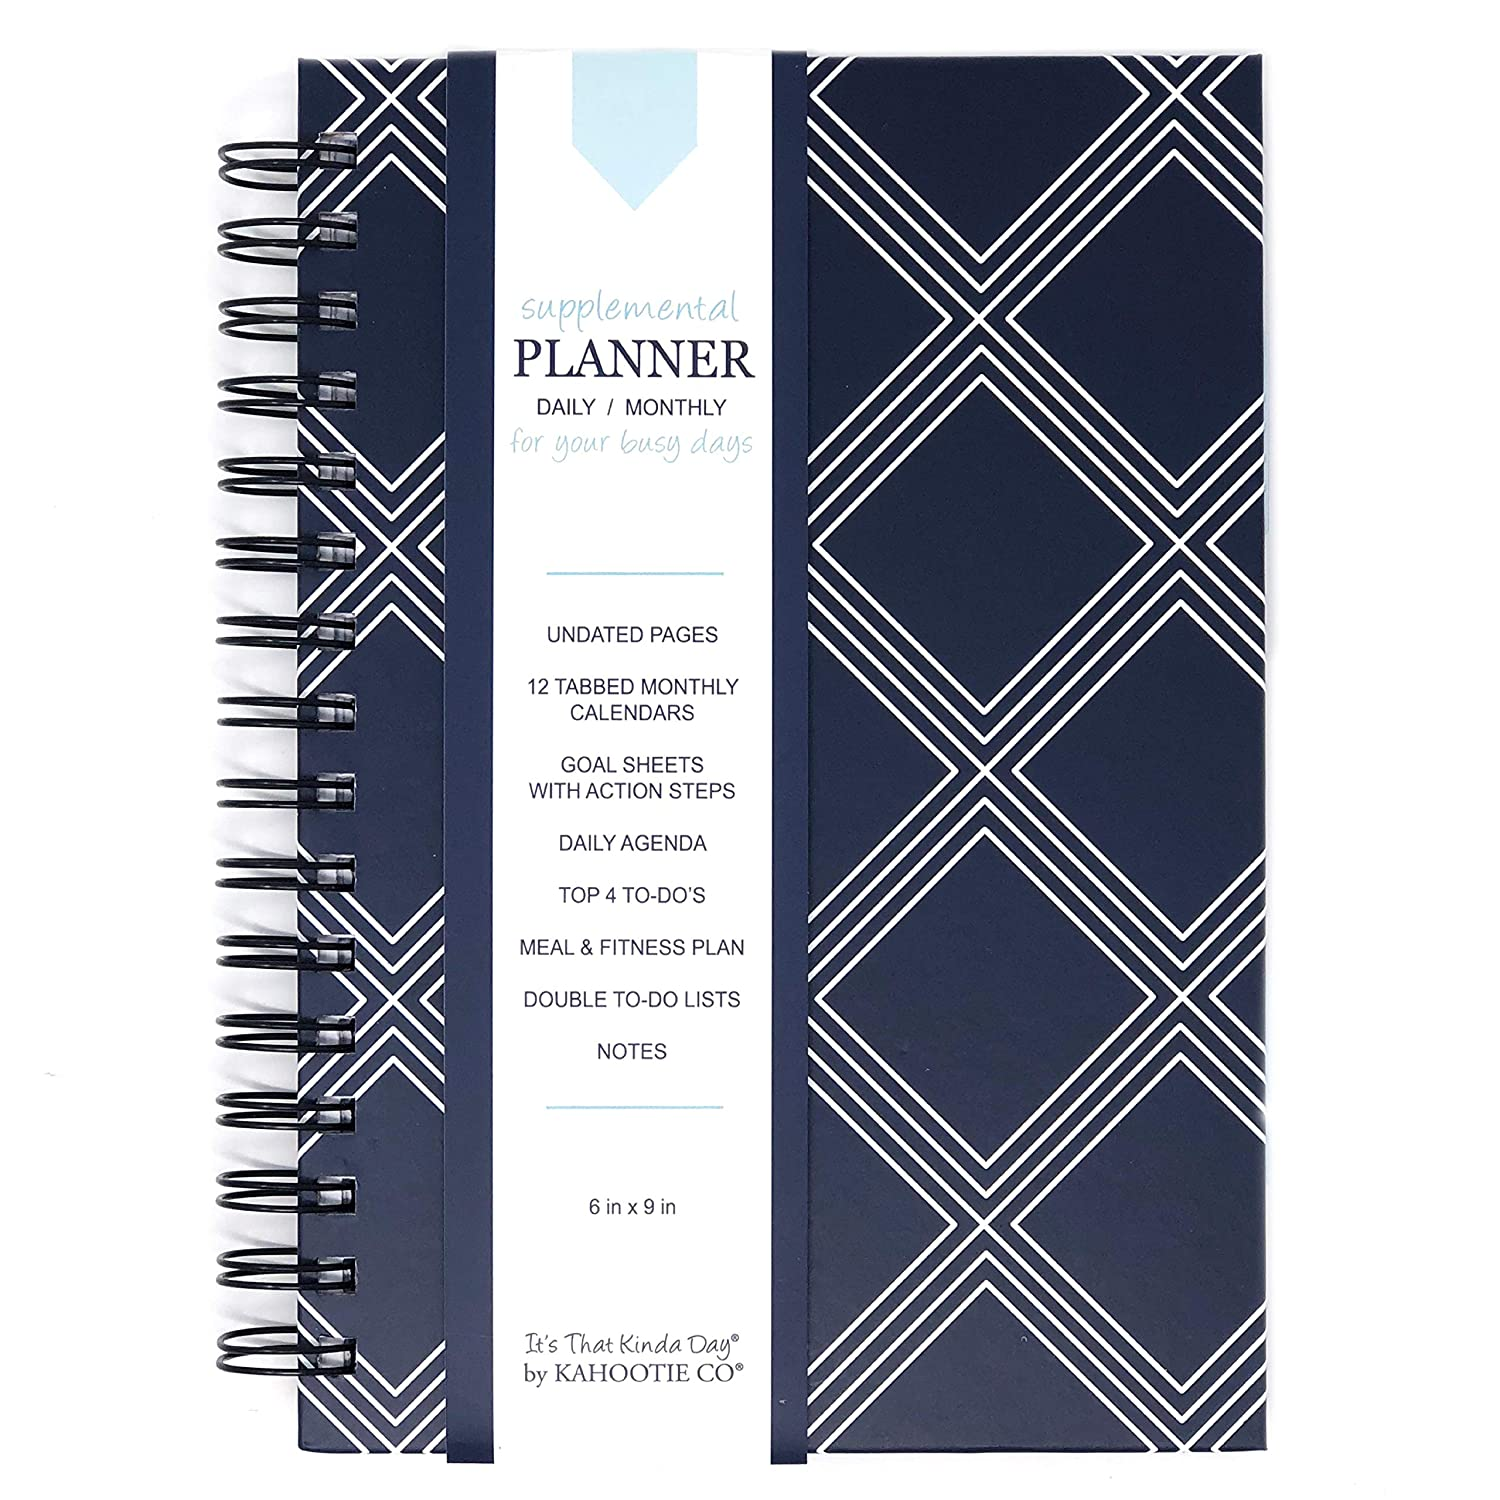 Kahootie Co Undated Daily Planner for Busy Days- keep focused, on task, accomplish top 4 daily to-dos, plan meals and fitness activity in advance, ...